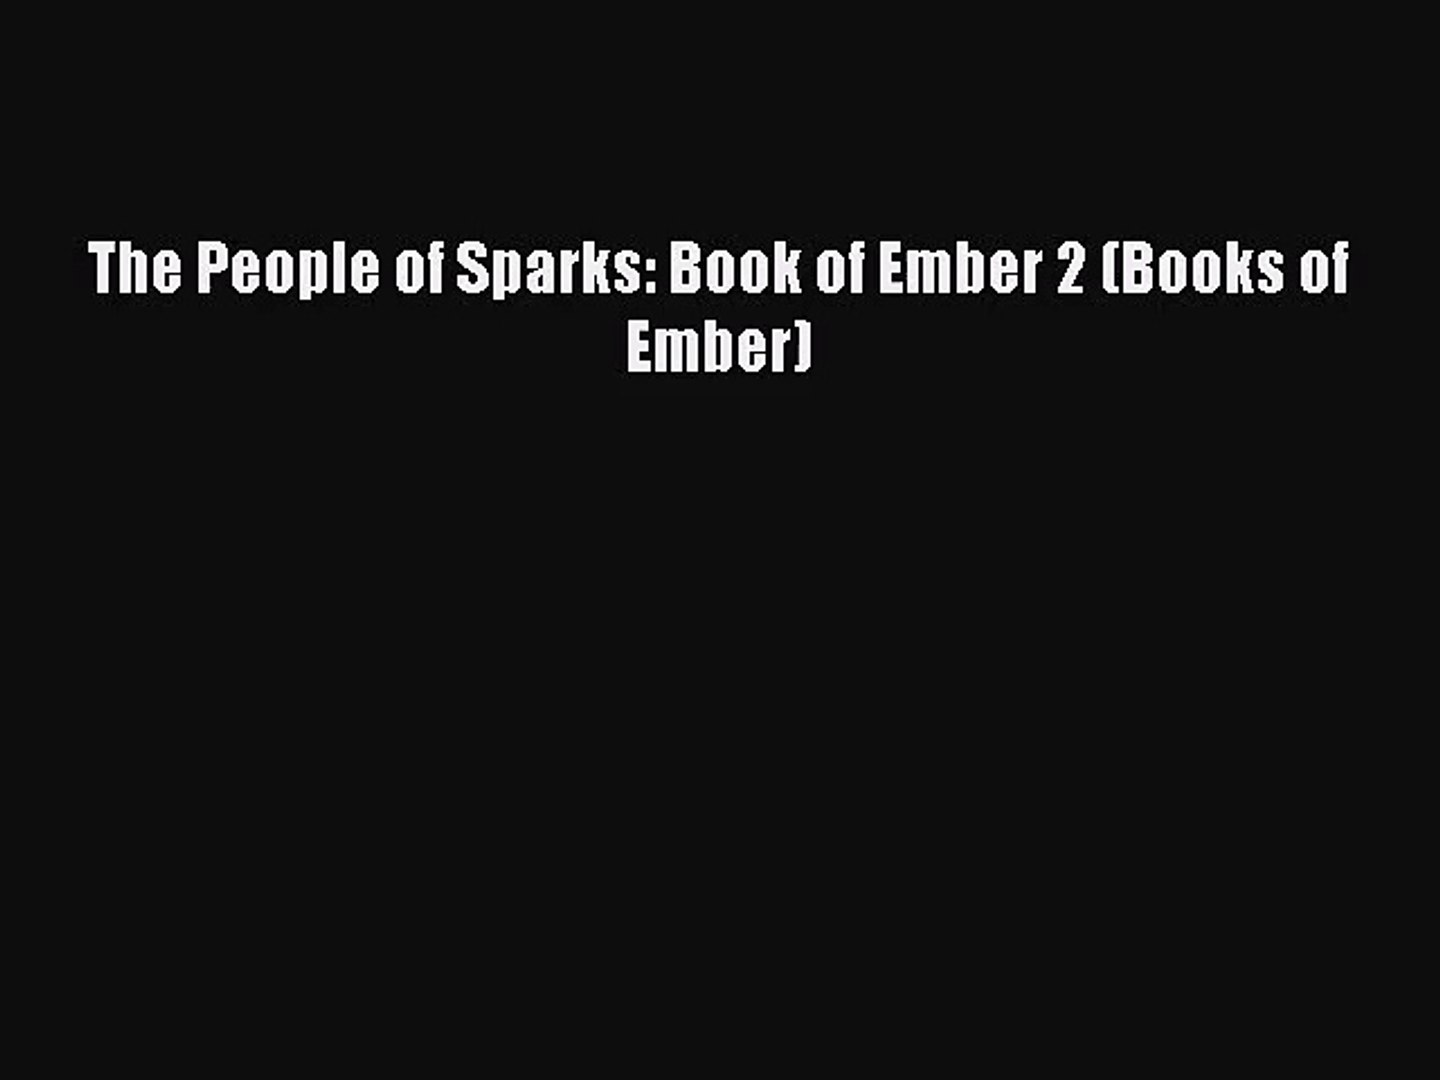 [PDF Download] The People of Sparks: Book of Ember 2 (Books of Ember) [Read] Full Ebook